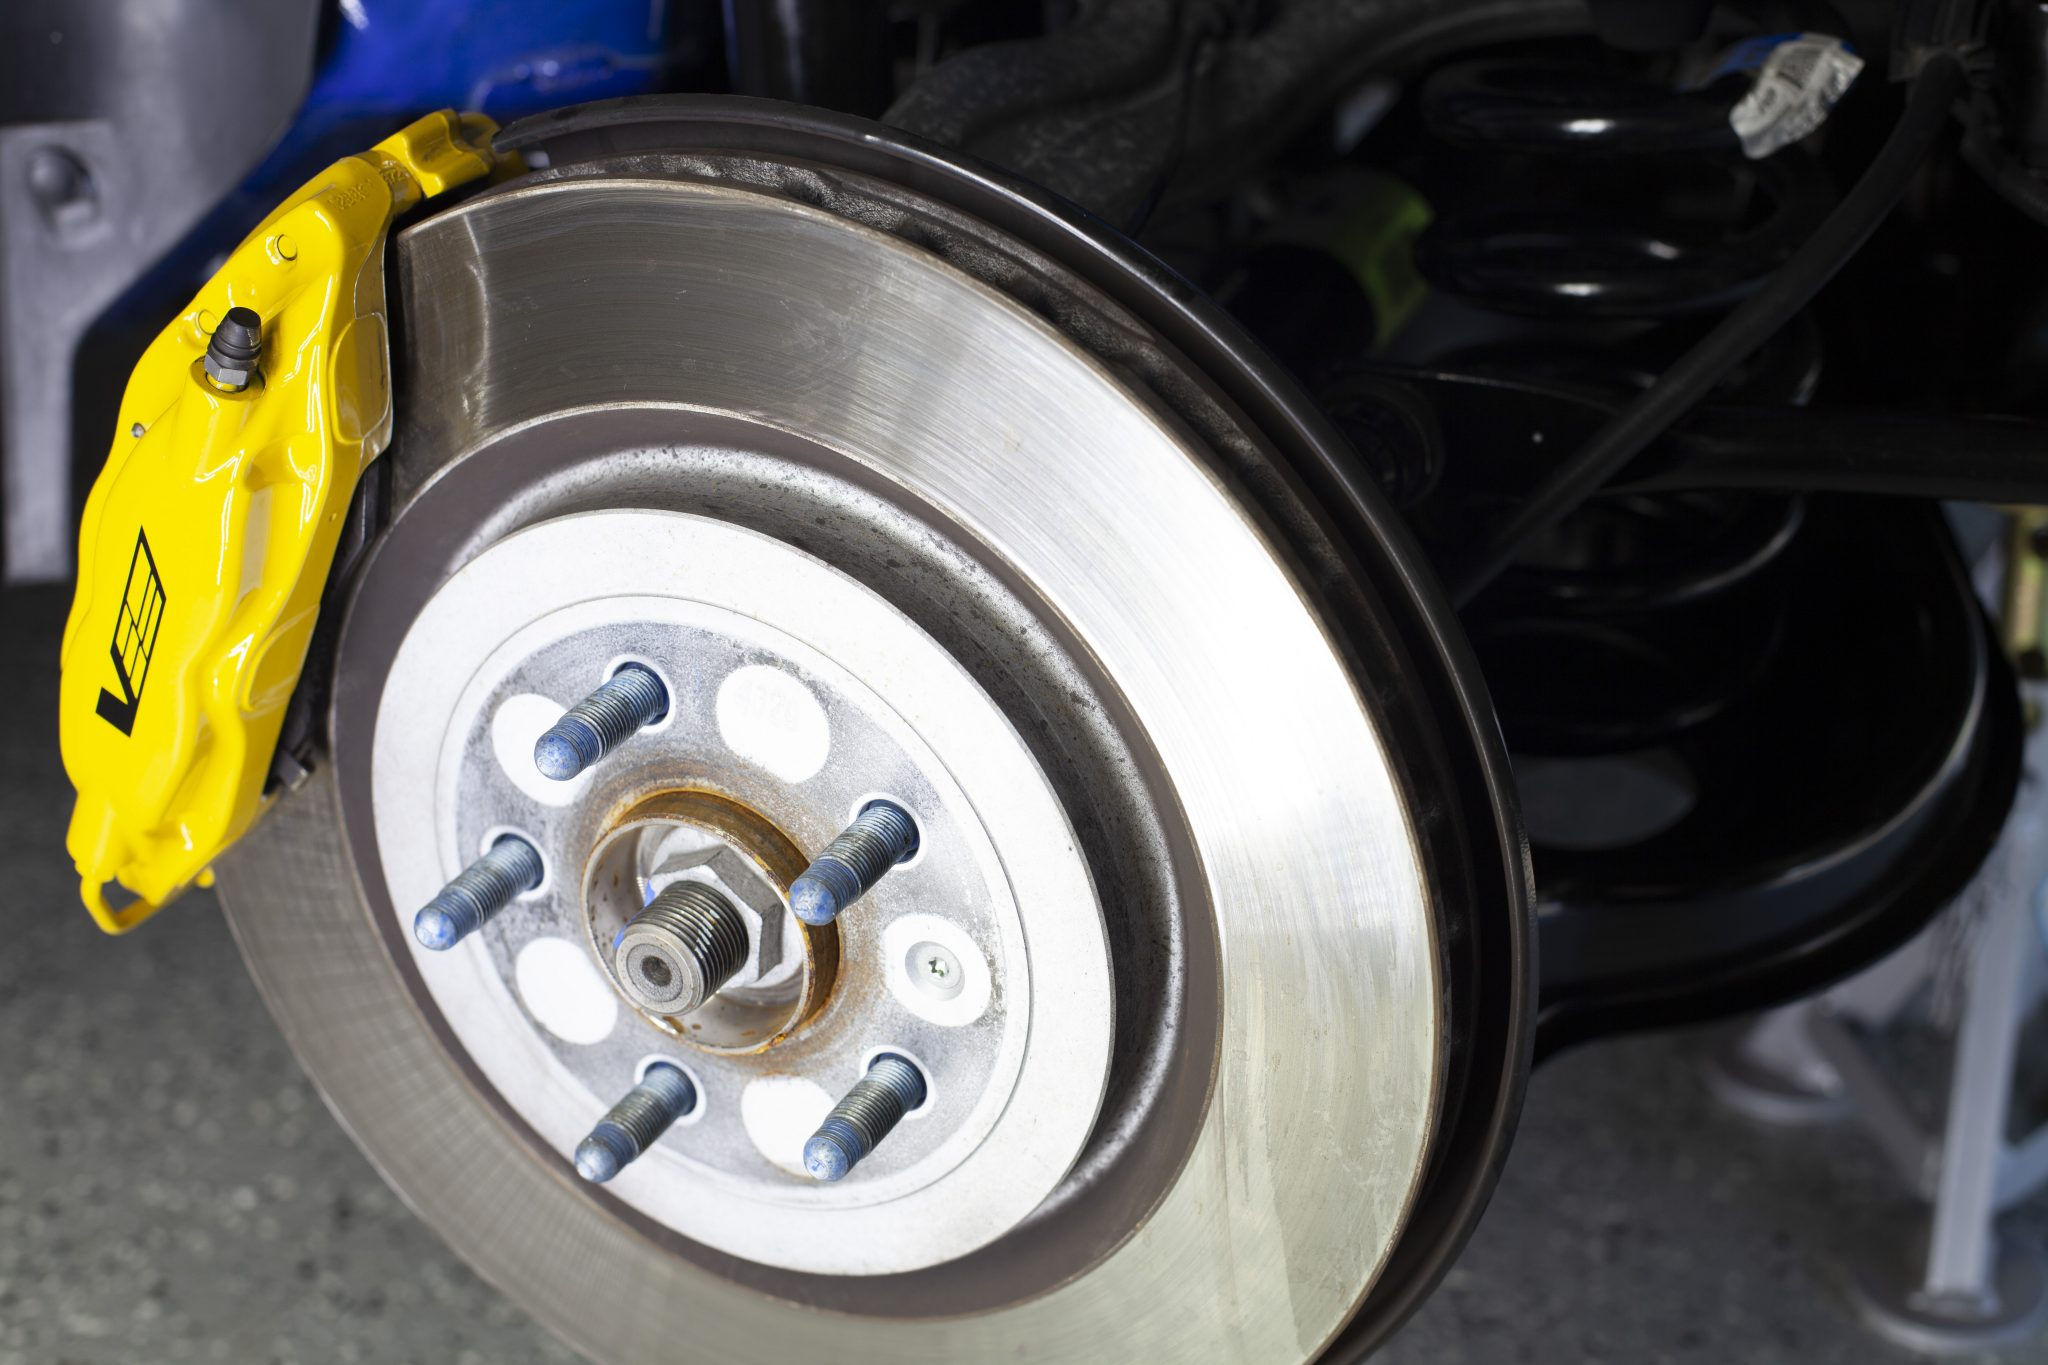 2012 Cadillac CTS-V Wagon brake and caliper